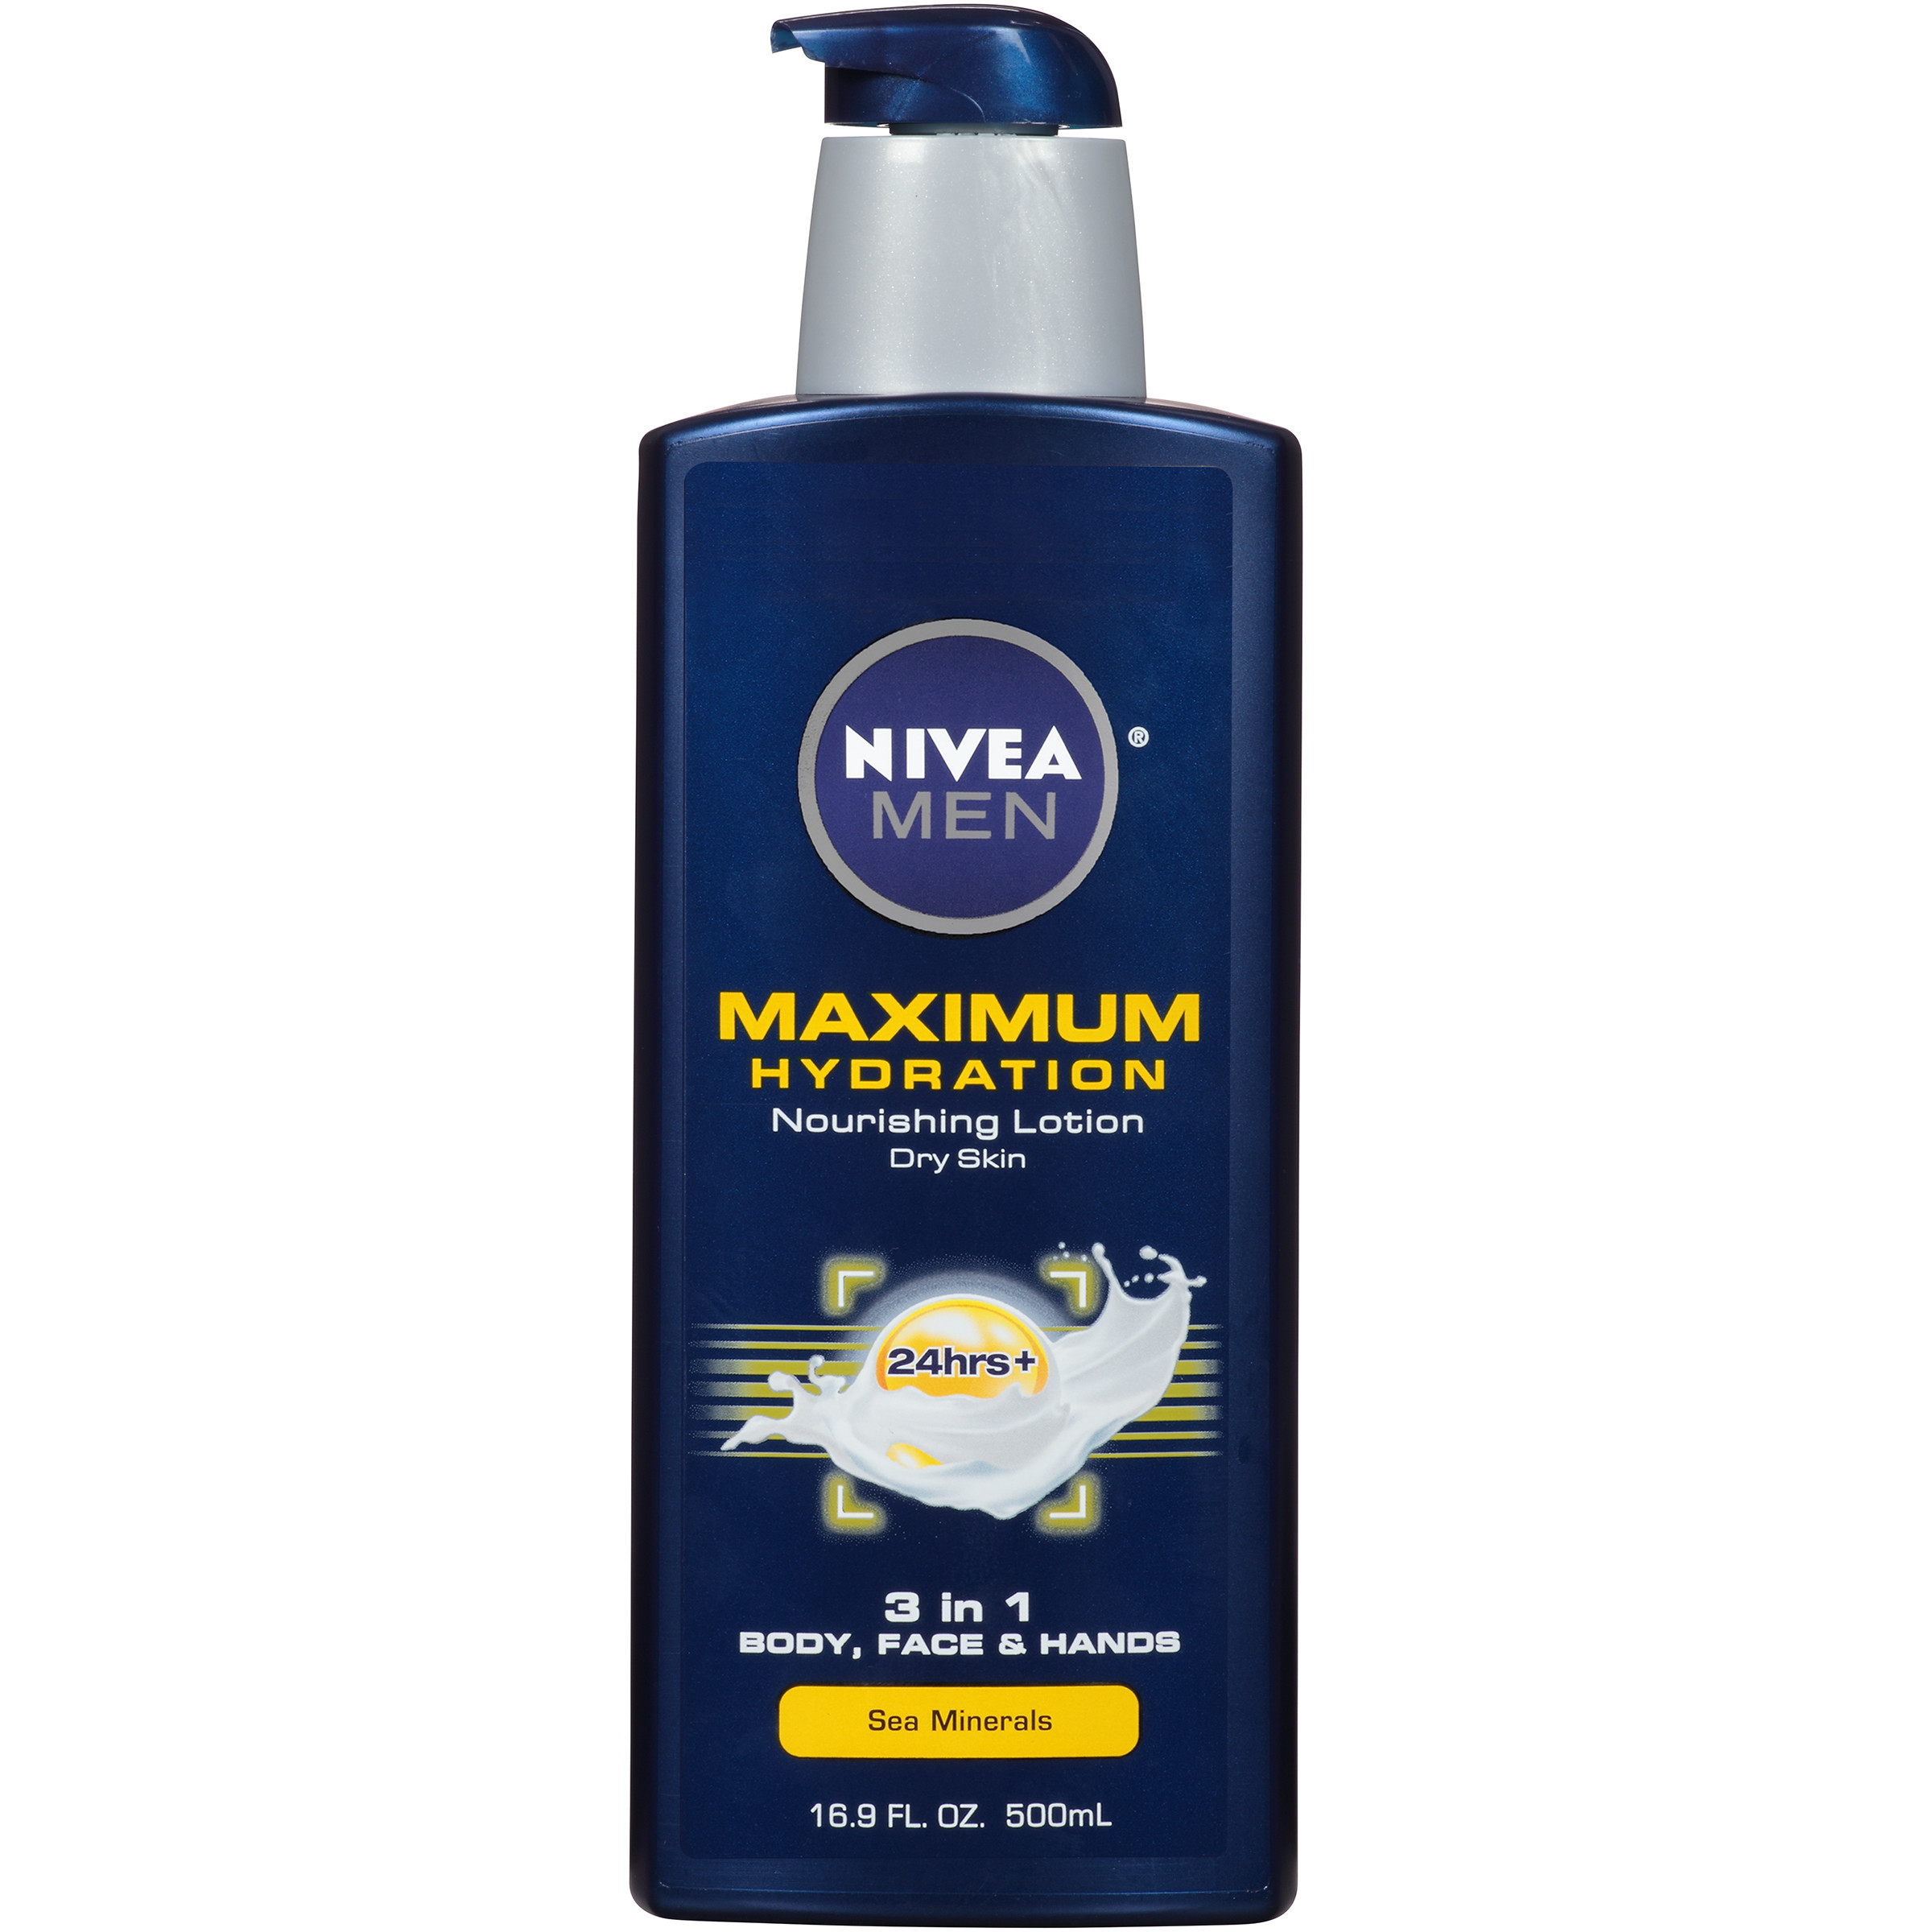 NIVEA Men Maximum Hydration 3 in 1 Nourishing Lotion 16.9 fl. oz. - Walmart.com